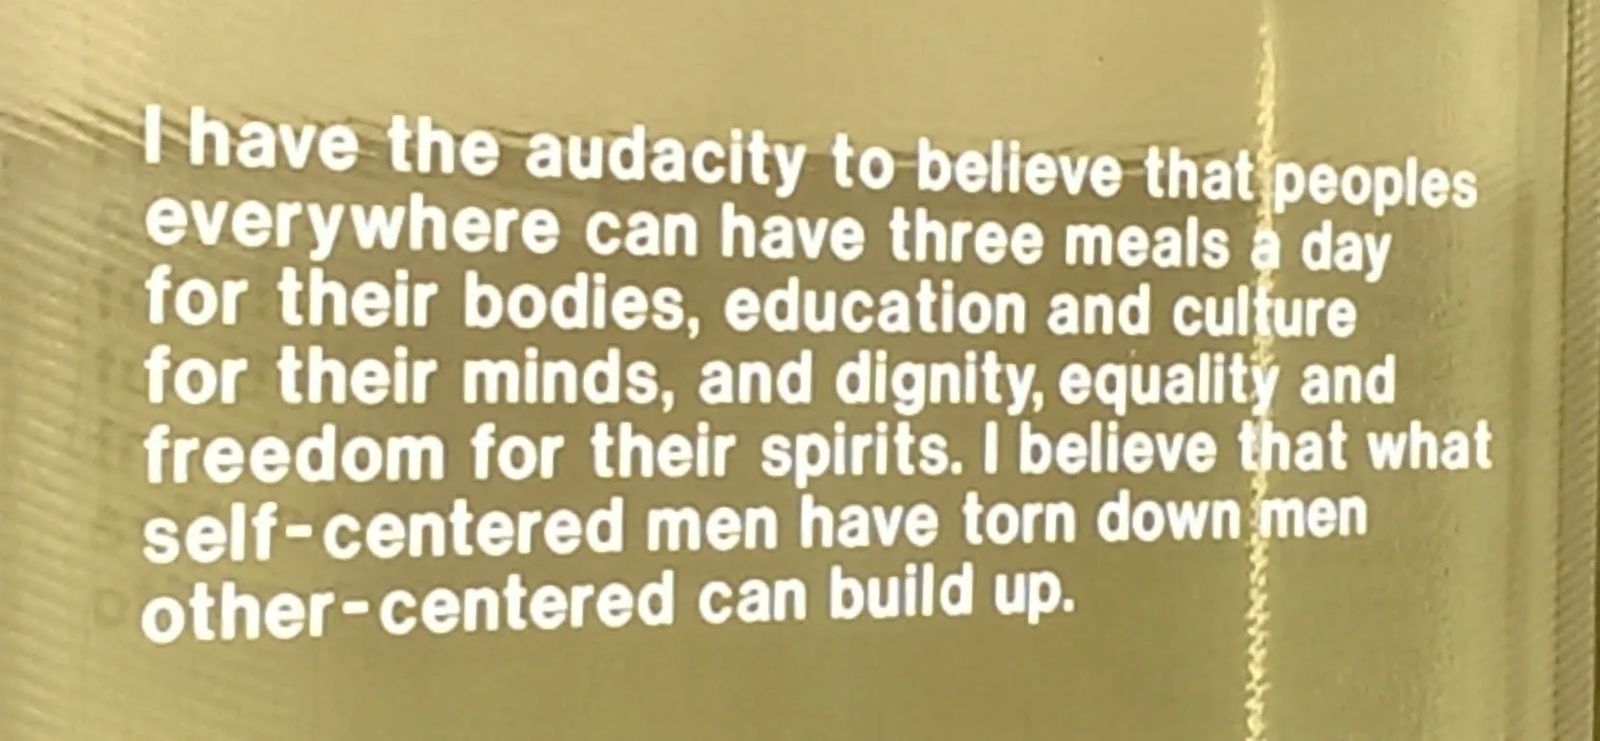 Photo of quote by Martin Luther King, Jr. in San Francisco, California